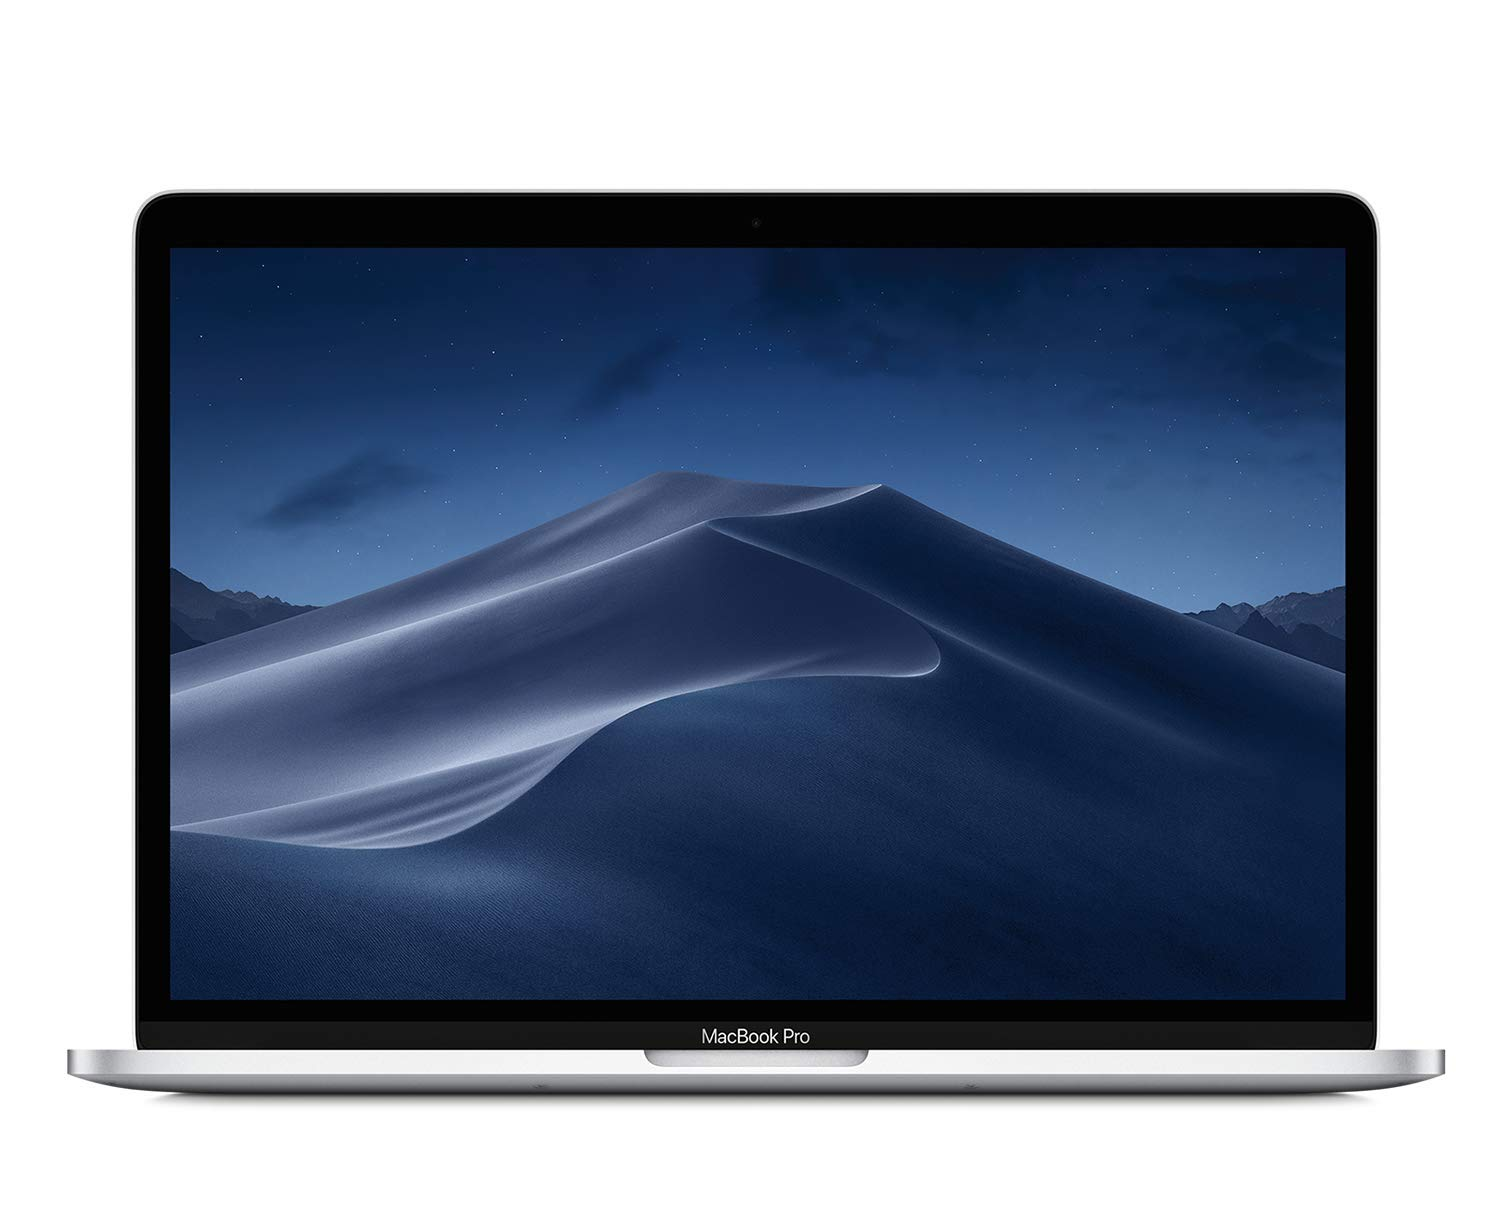 Ultramoderne Amazon.com: Apple MacBook Pro (13-inch Retina, 2.3GHz Quad-Core HA-23